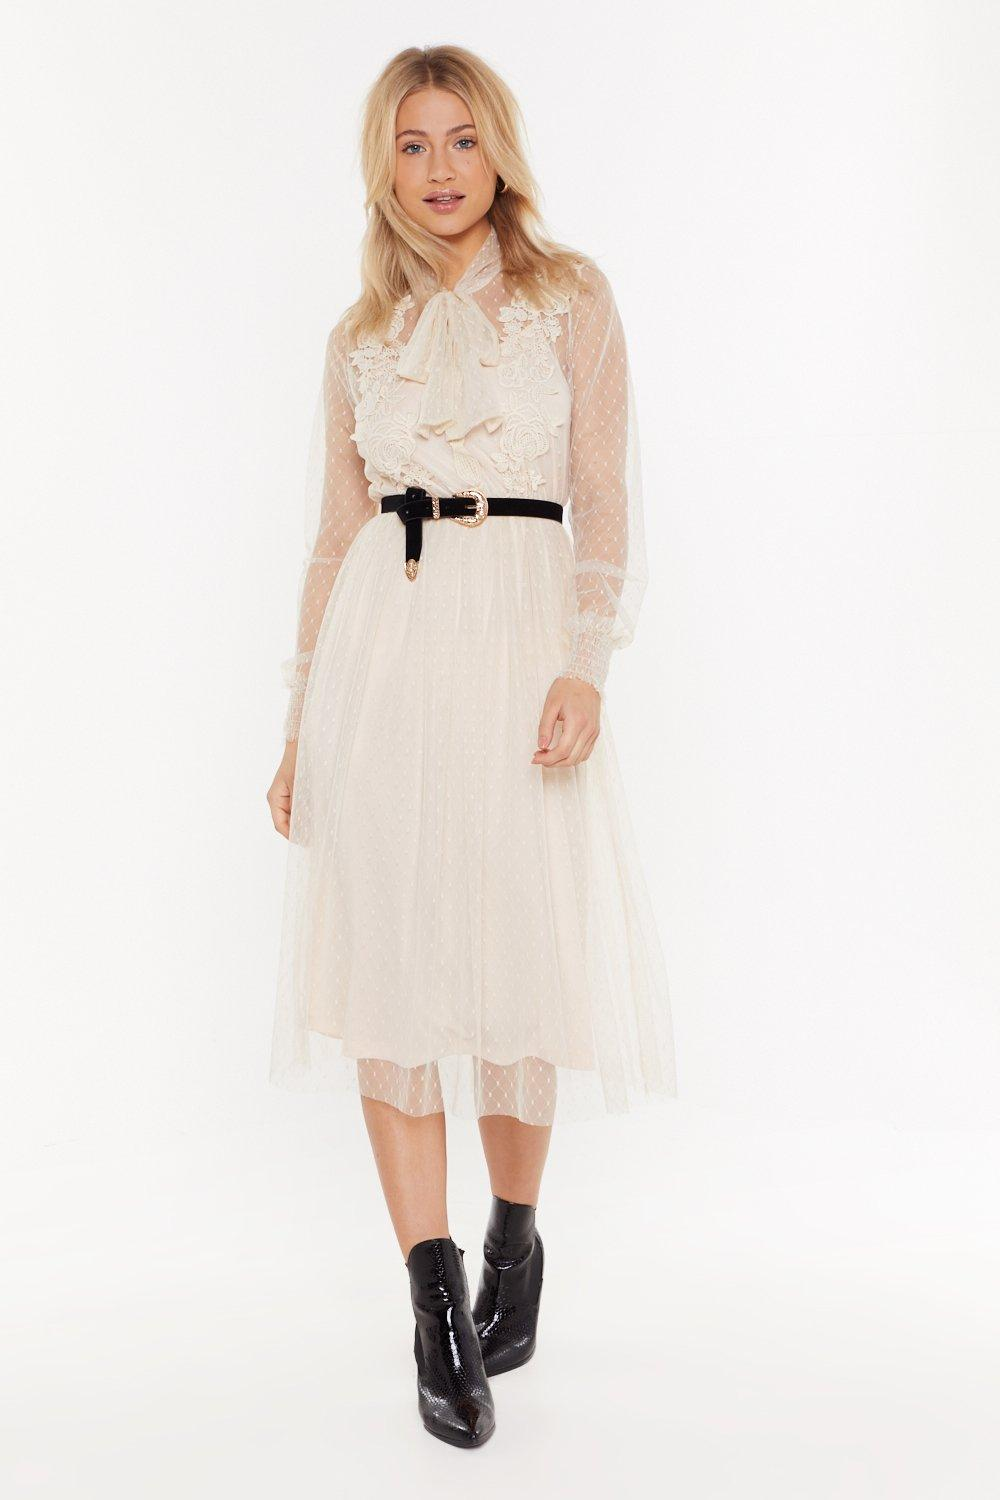 Bow Doubt About It Applique Midi Dress by Nasty Gal